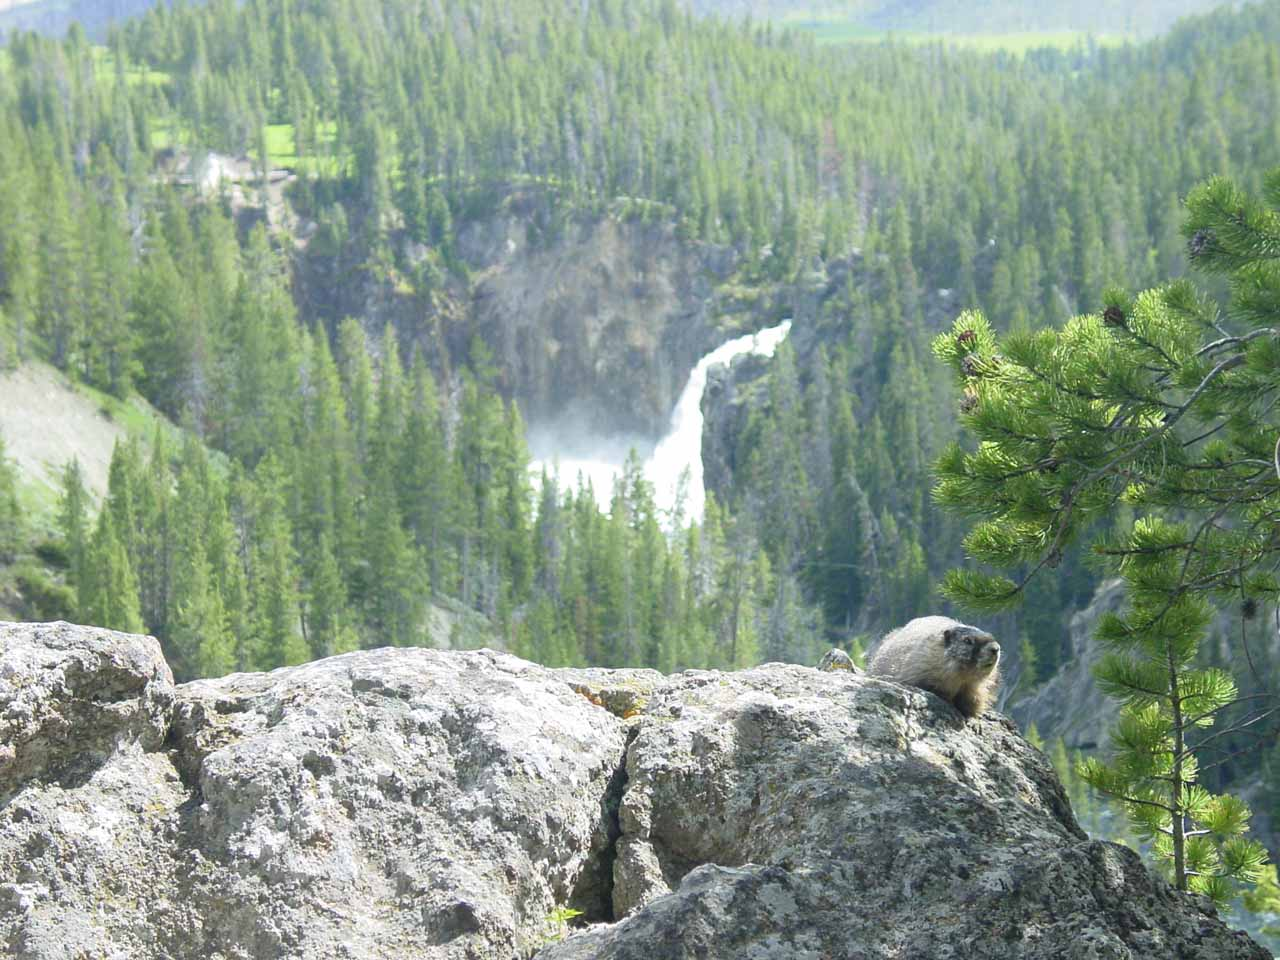 While seeking out the brink of the Lower Falls in June 2004, we managed to get this view of a marmot before the distant falls